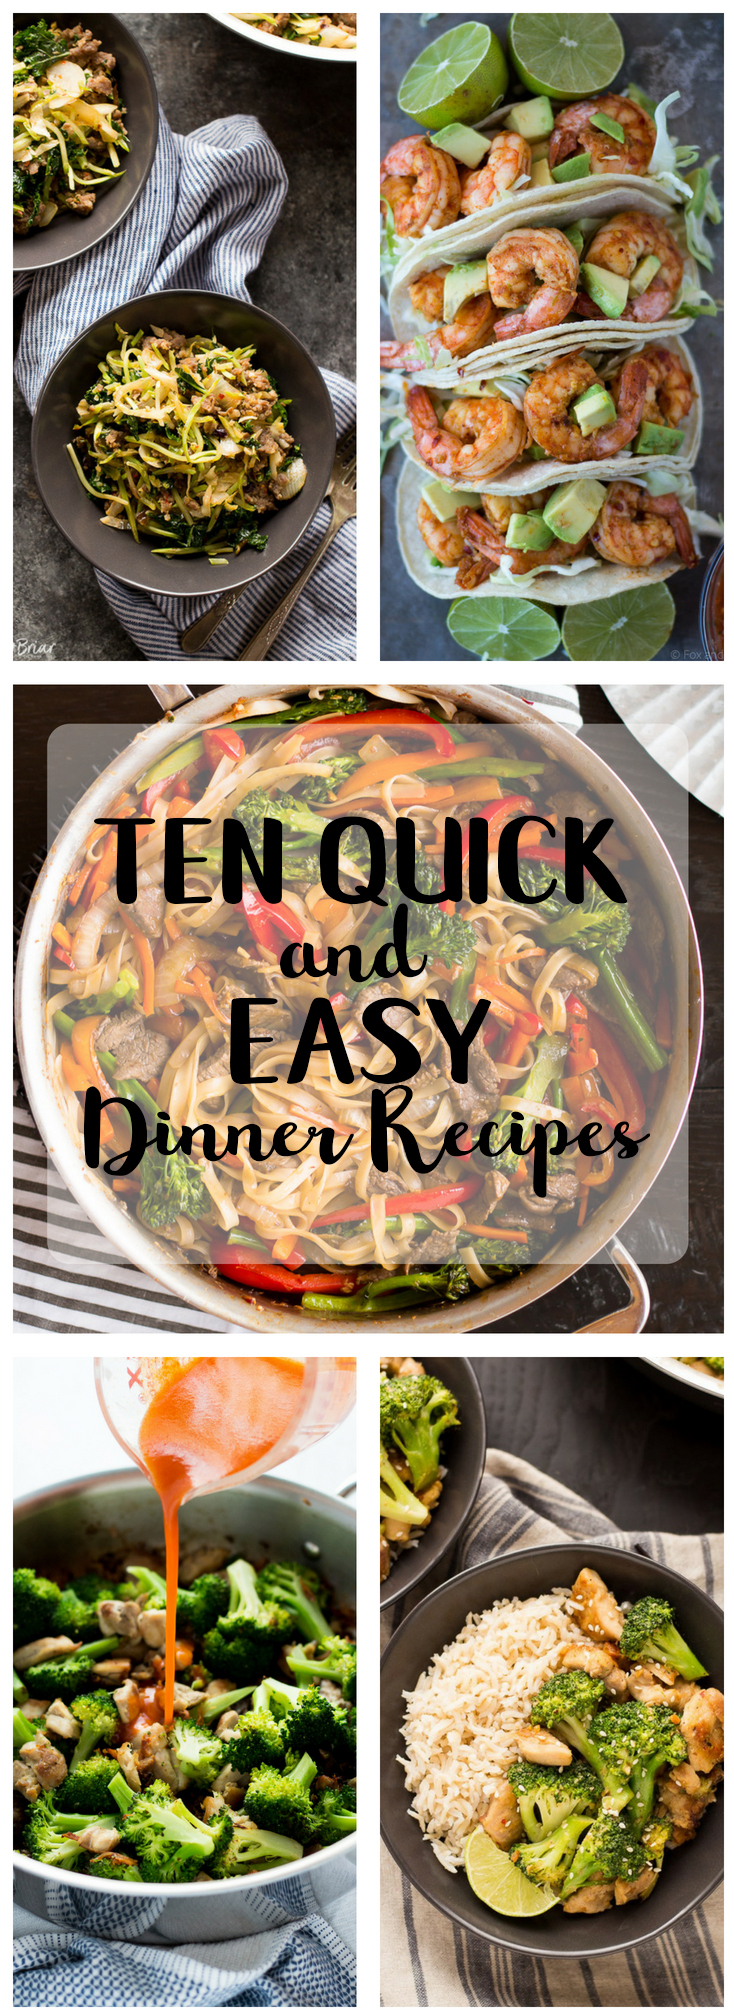 Quick and easy dinner ideas for back to school. Ten easy and healthy dinners that take 30 minutes or less!